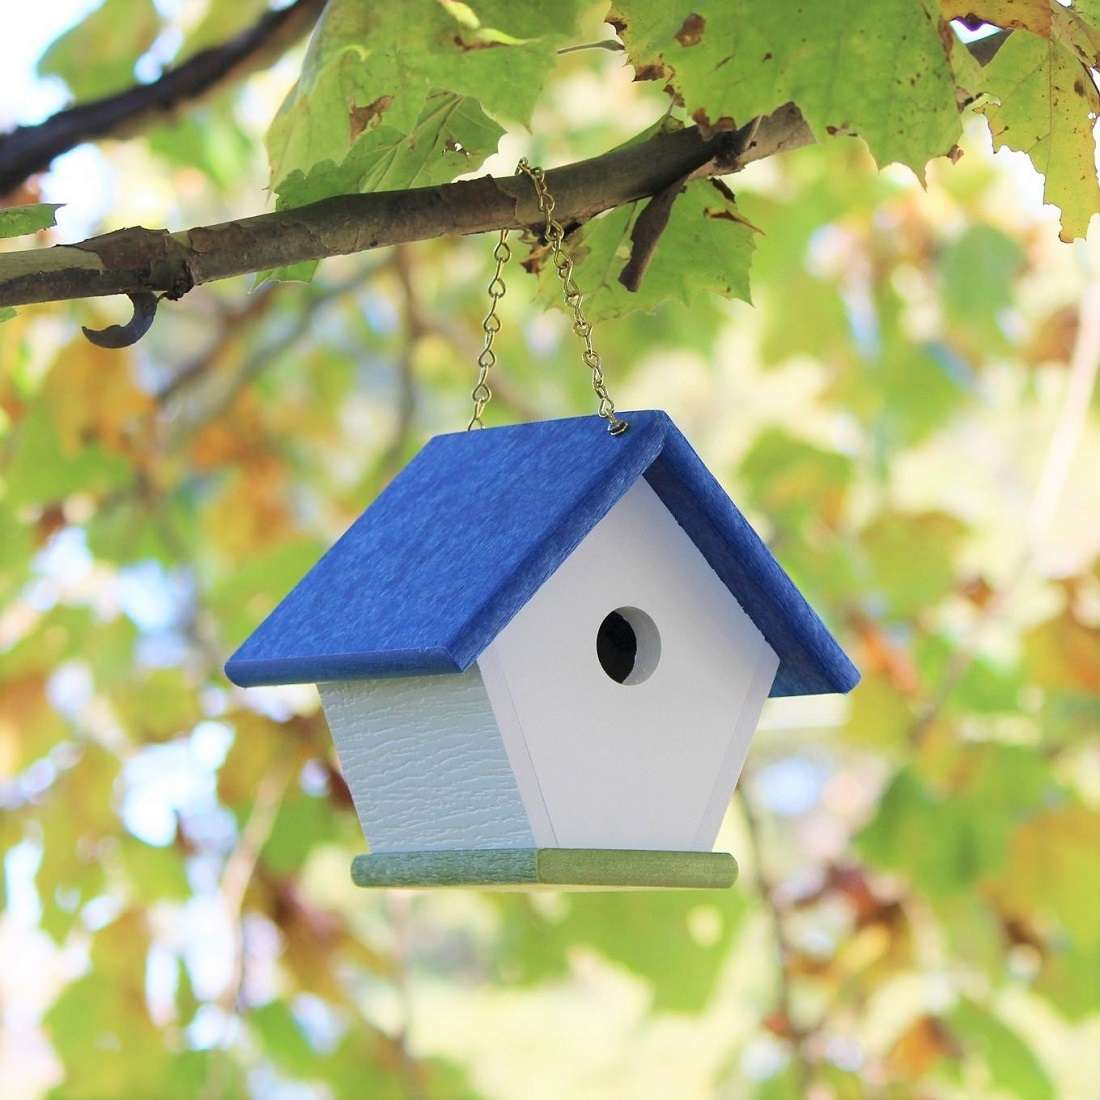 wren bird house hanging in a tree in the fall weather